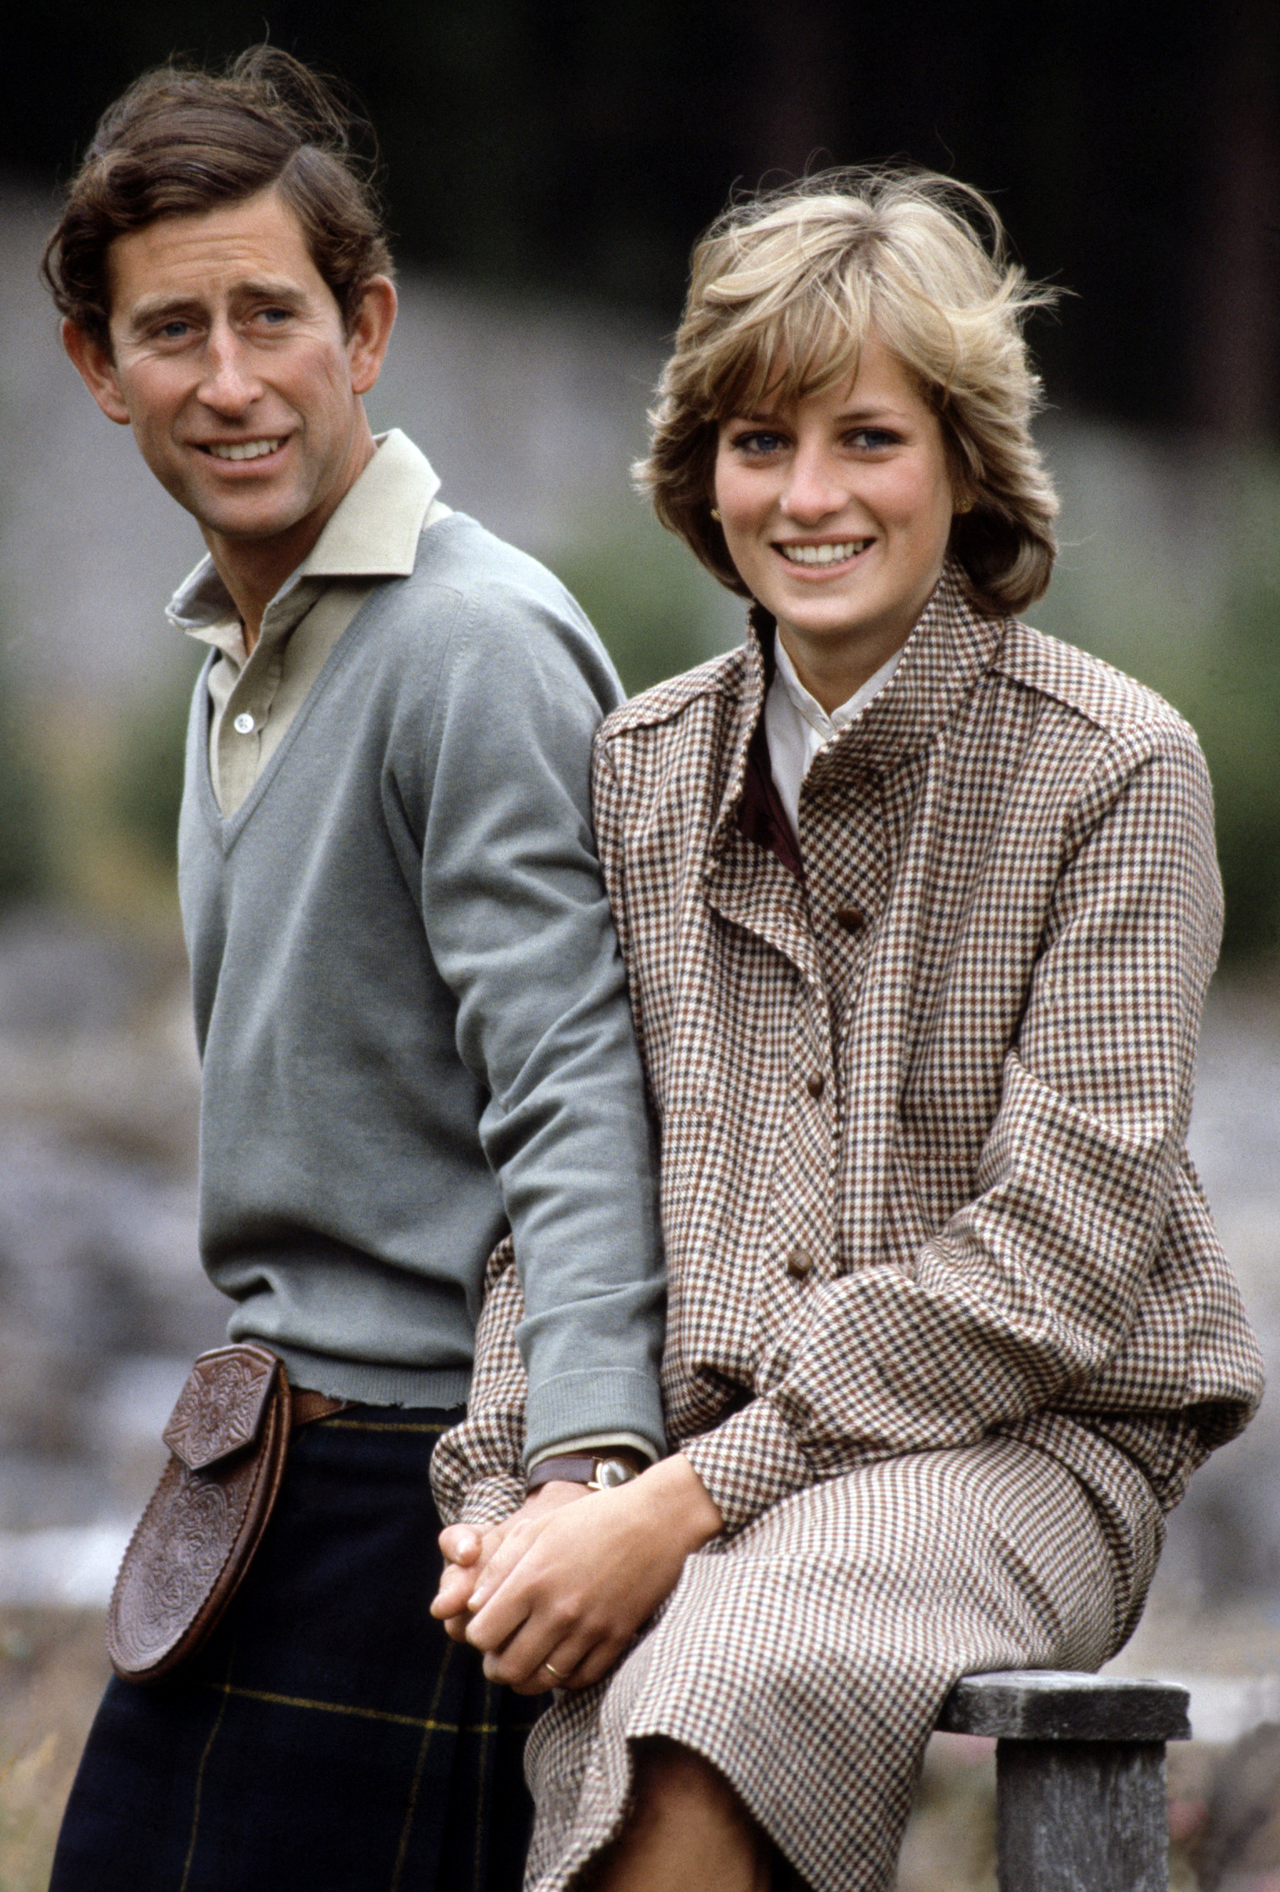 British Royalty. Scotland. 19th August 1981. Prince Charles and Princess Diana pose by the River Dee while on their honeymoon.